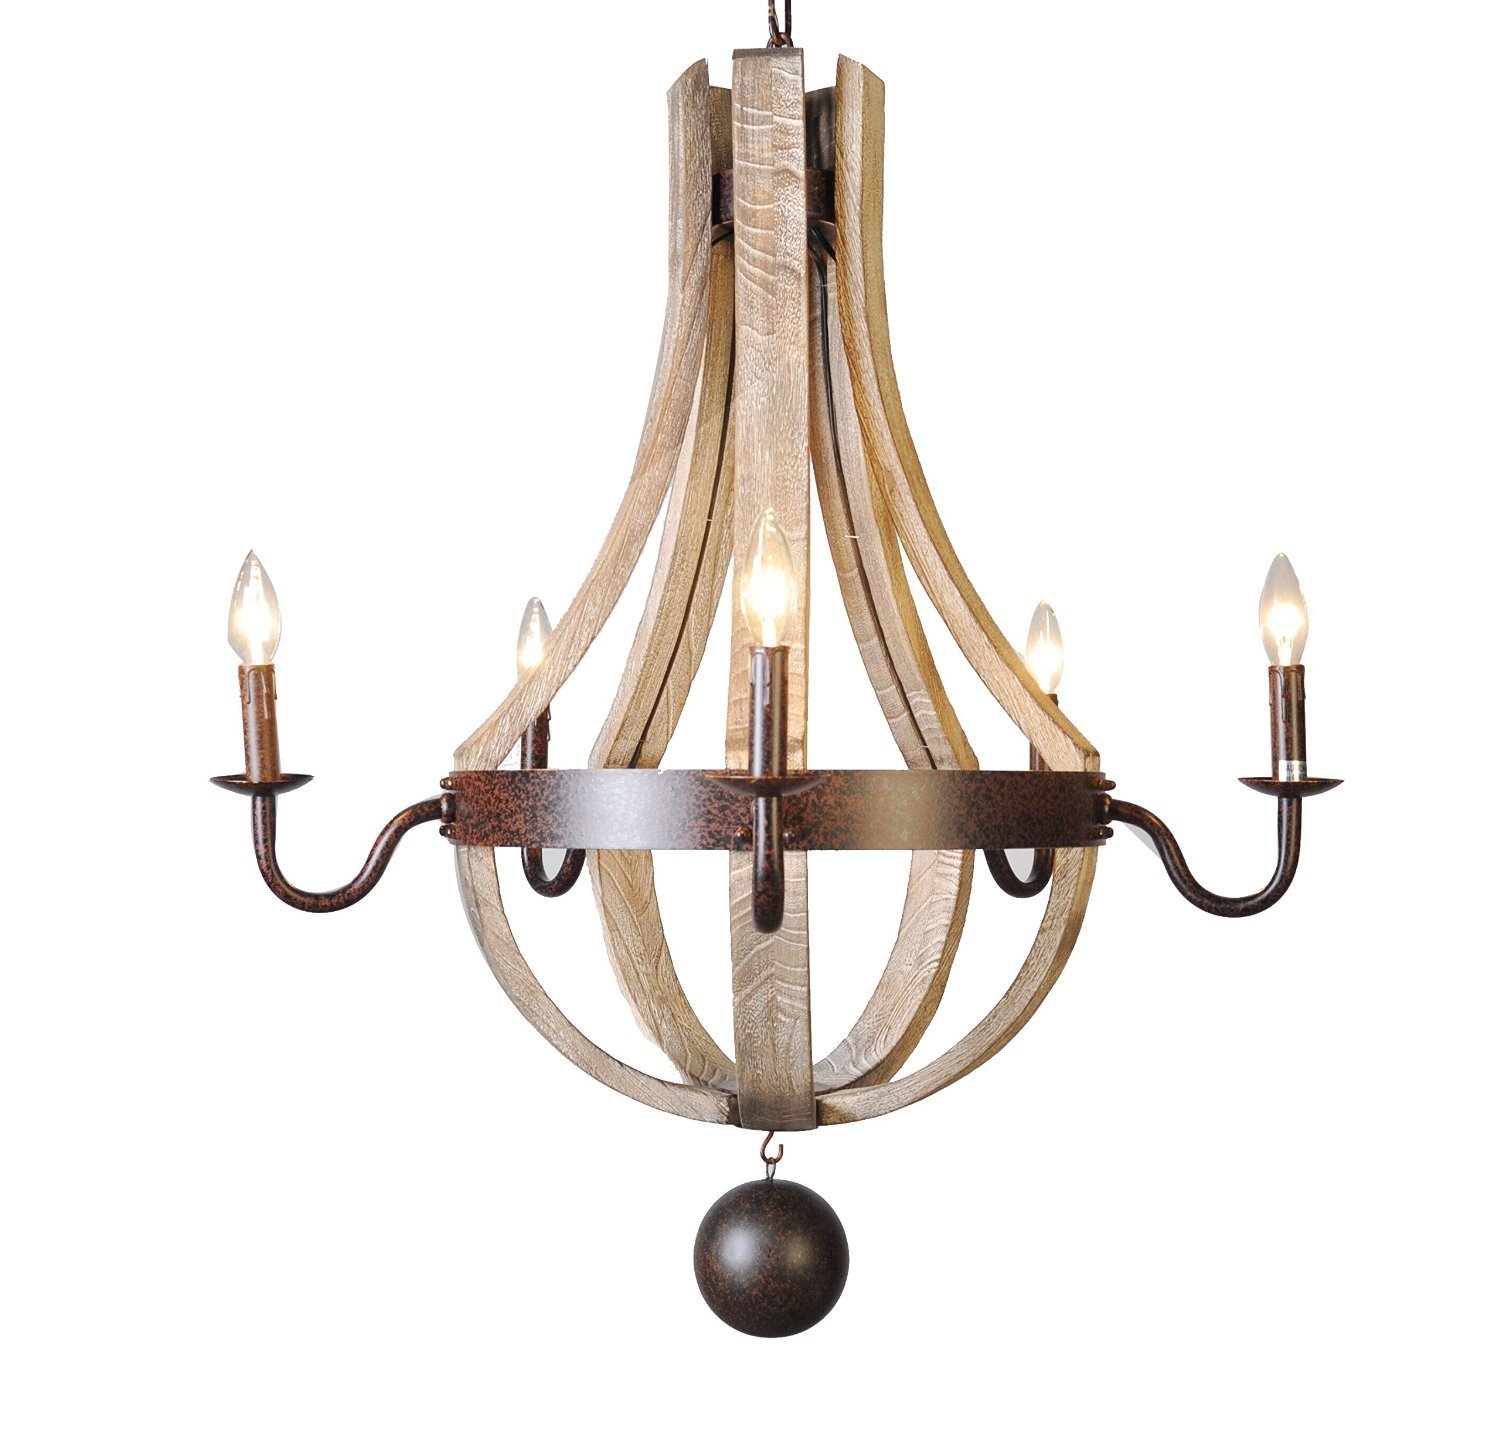 Vintage French Country Wood Metal Wine Barrel Chandelier Pendant